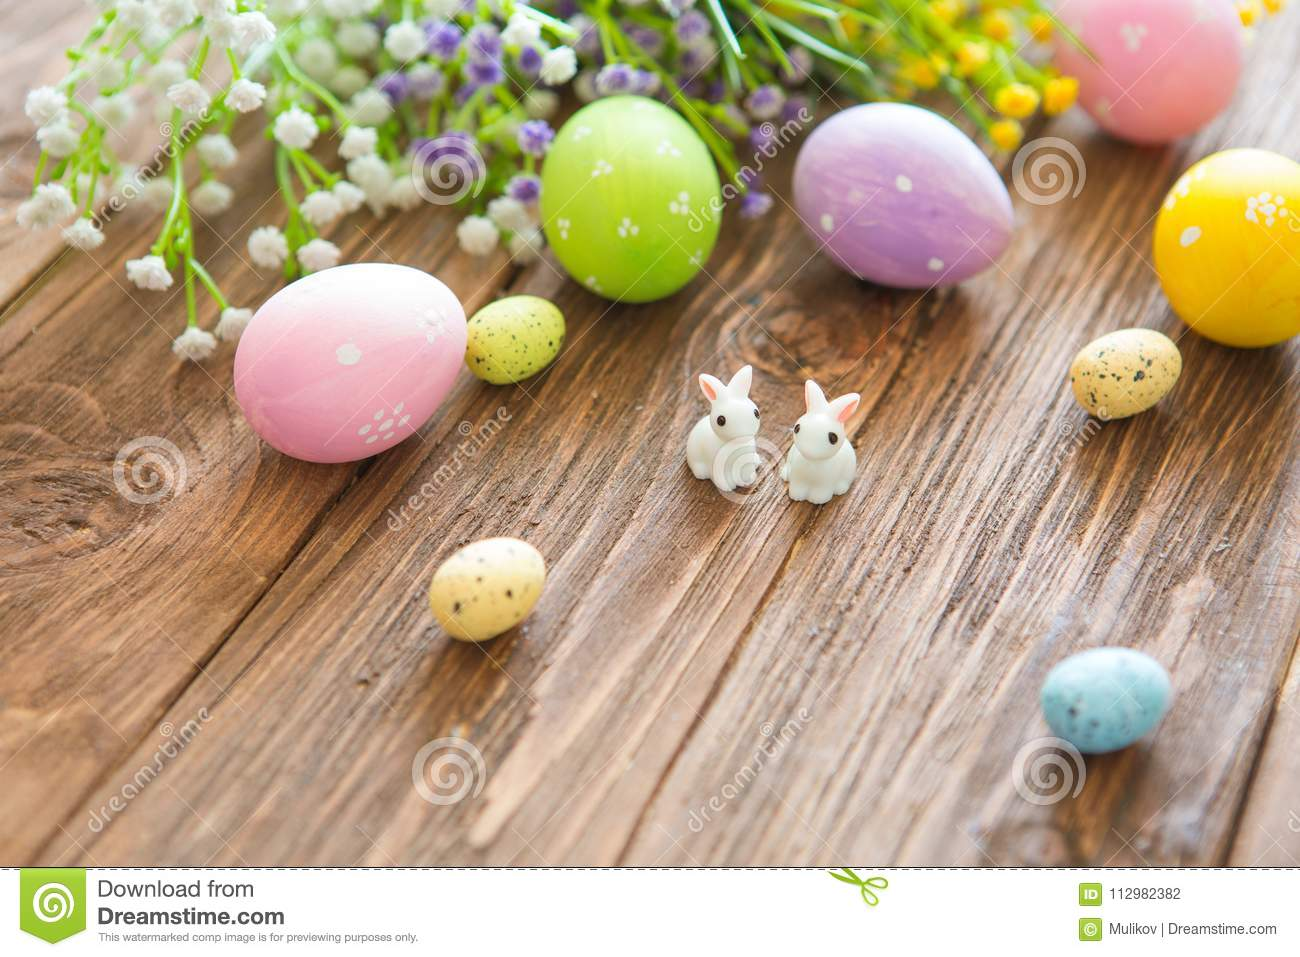 Happy Easter concept. Rabbits with easter eggs on wooden table. Cute Little easter bunny